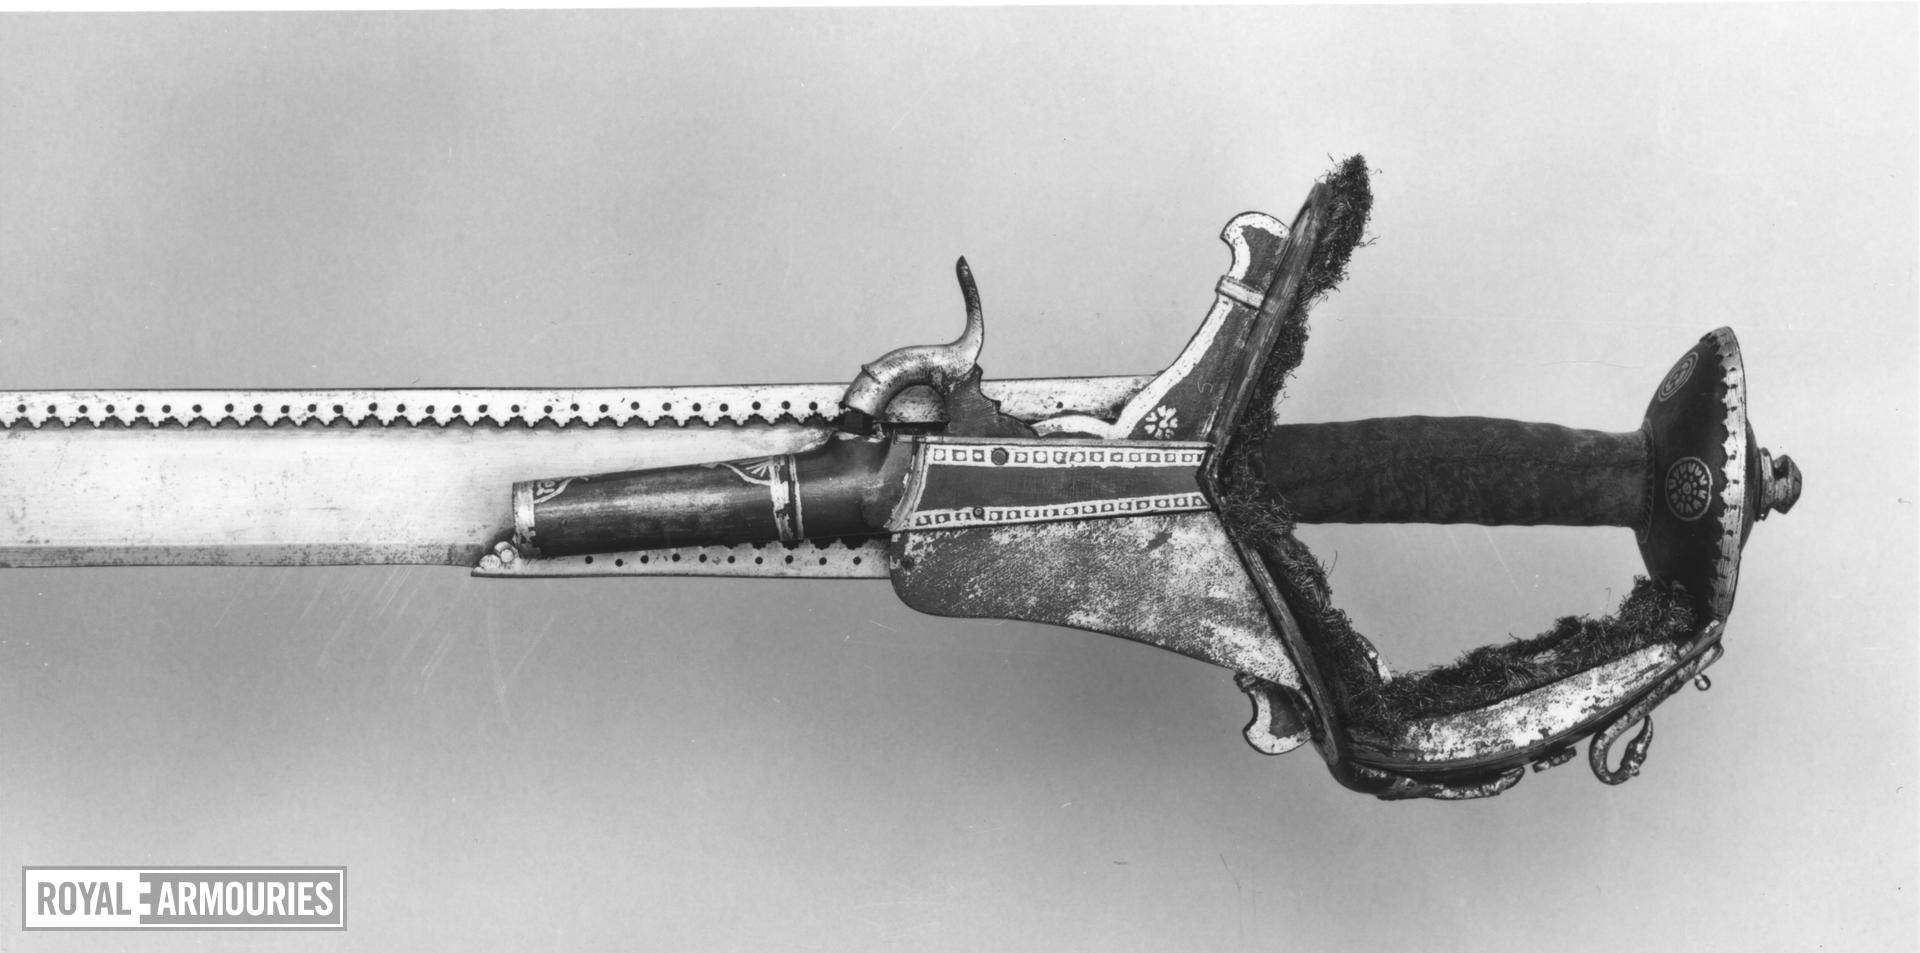 Sword (khanda) with dagger (katar) and scabbards Sword (khanda) with dagger (katar) and scabbards with percussion pistol